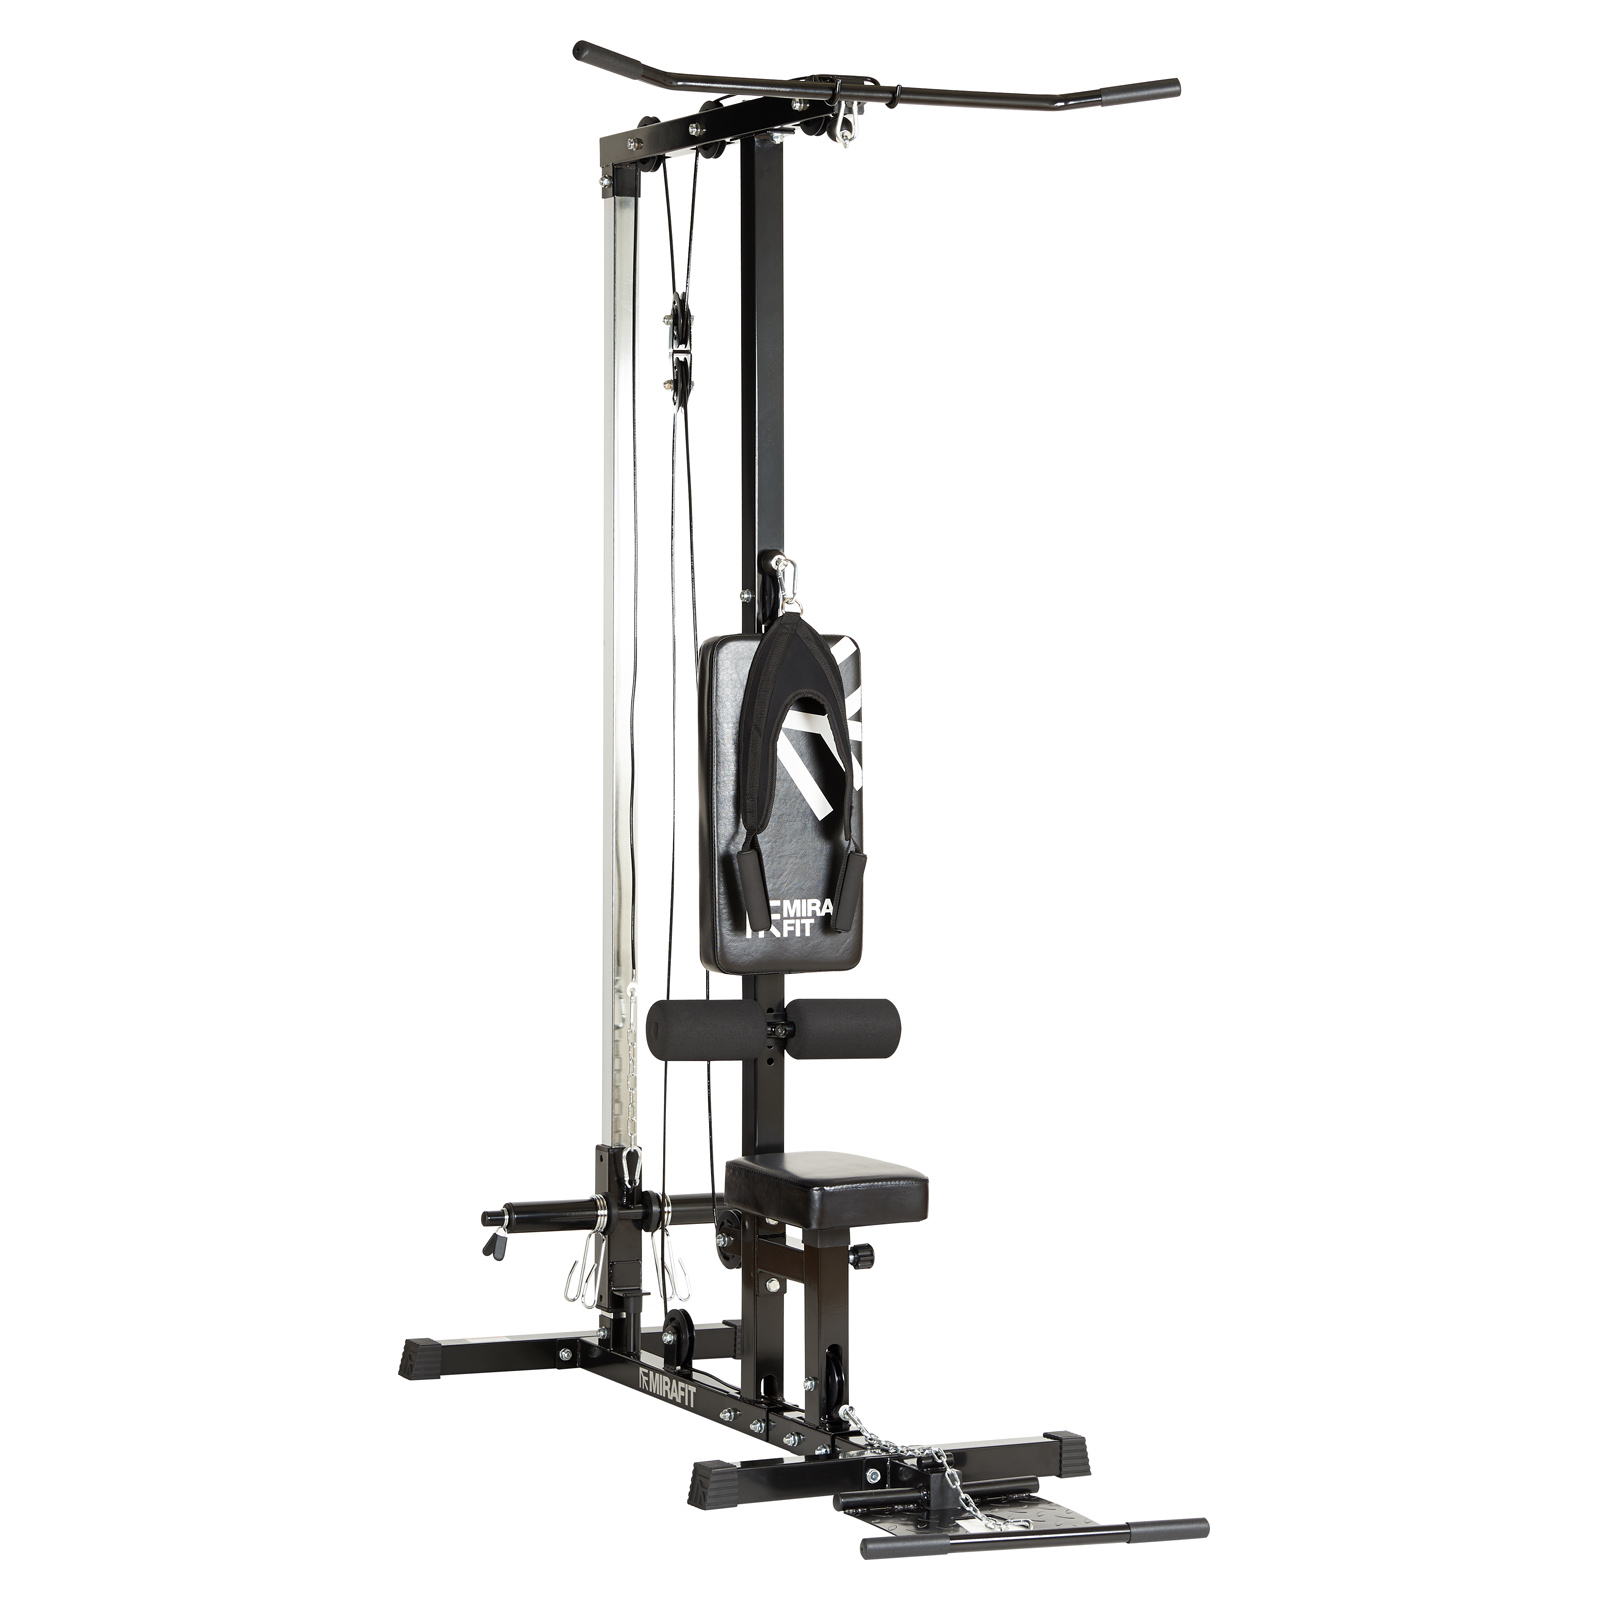 Details about Mirafit Multi Gym Lat Pull Down Machine Seated Cable Row/Arm  Curl Back Home Gym